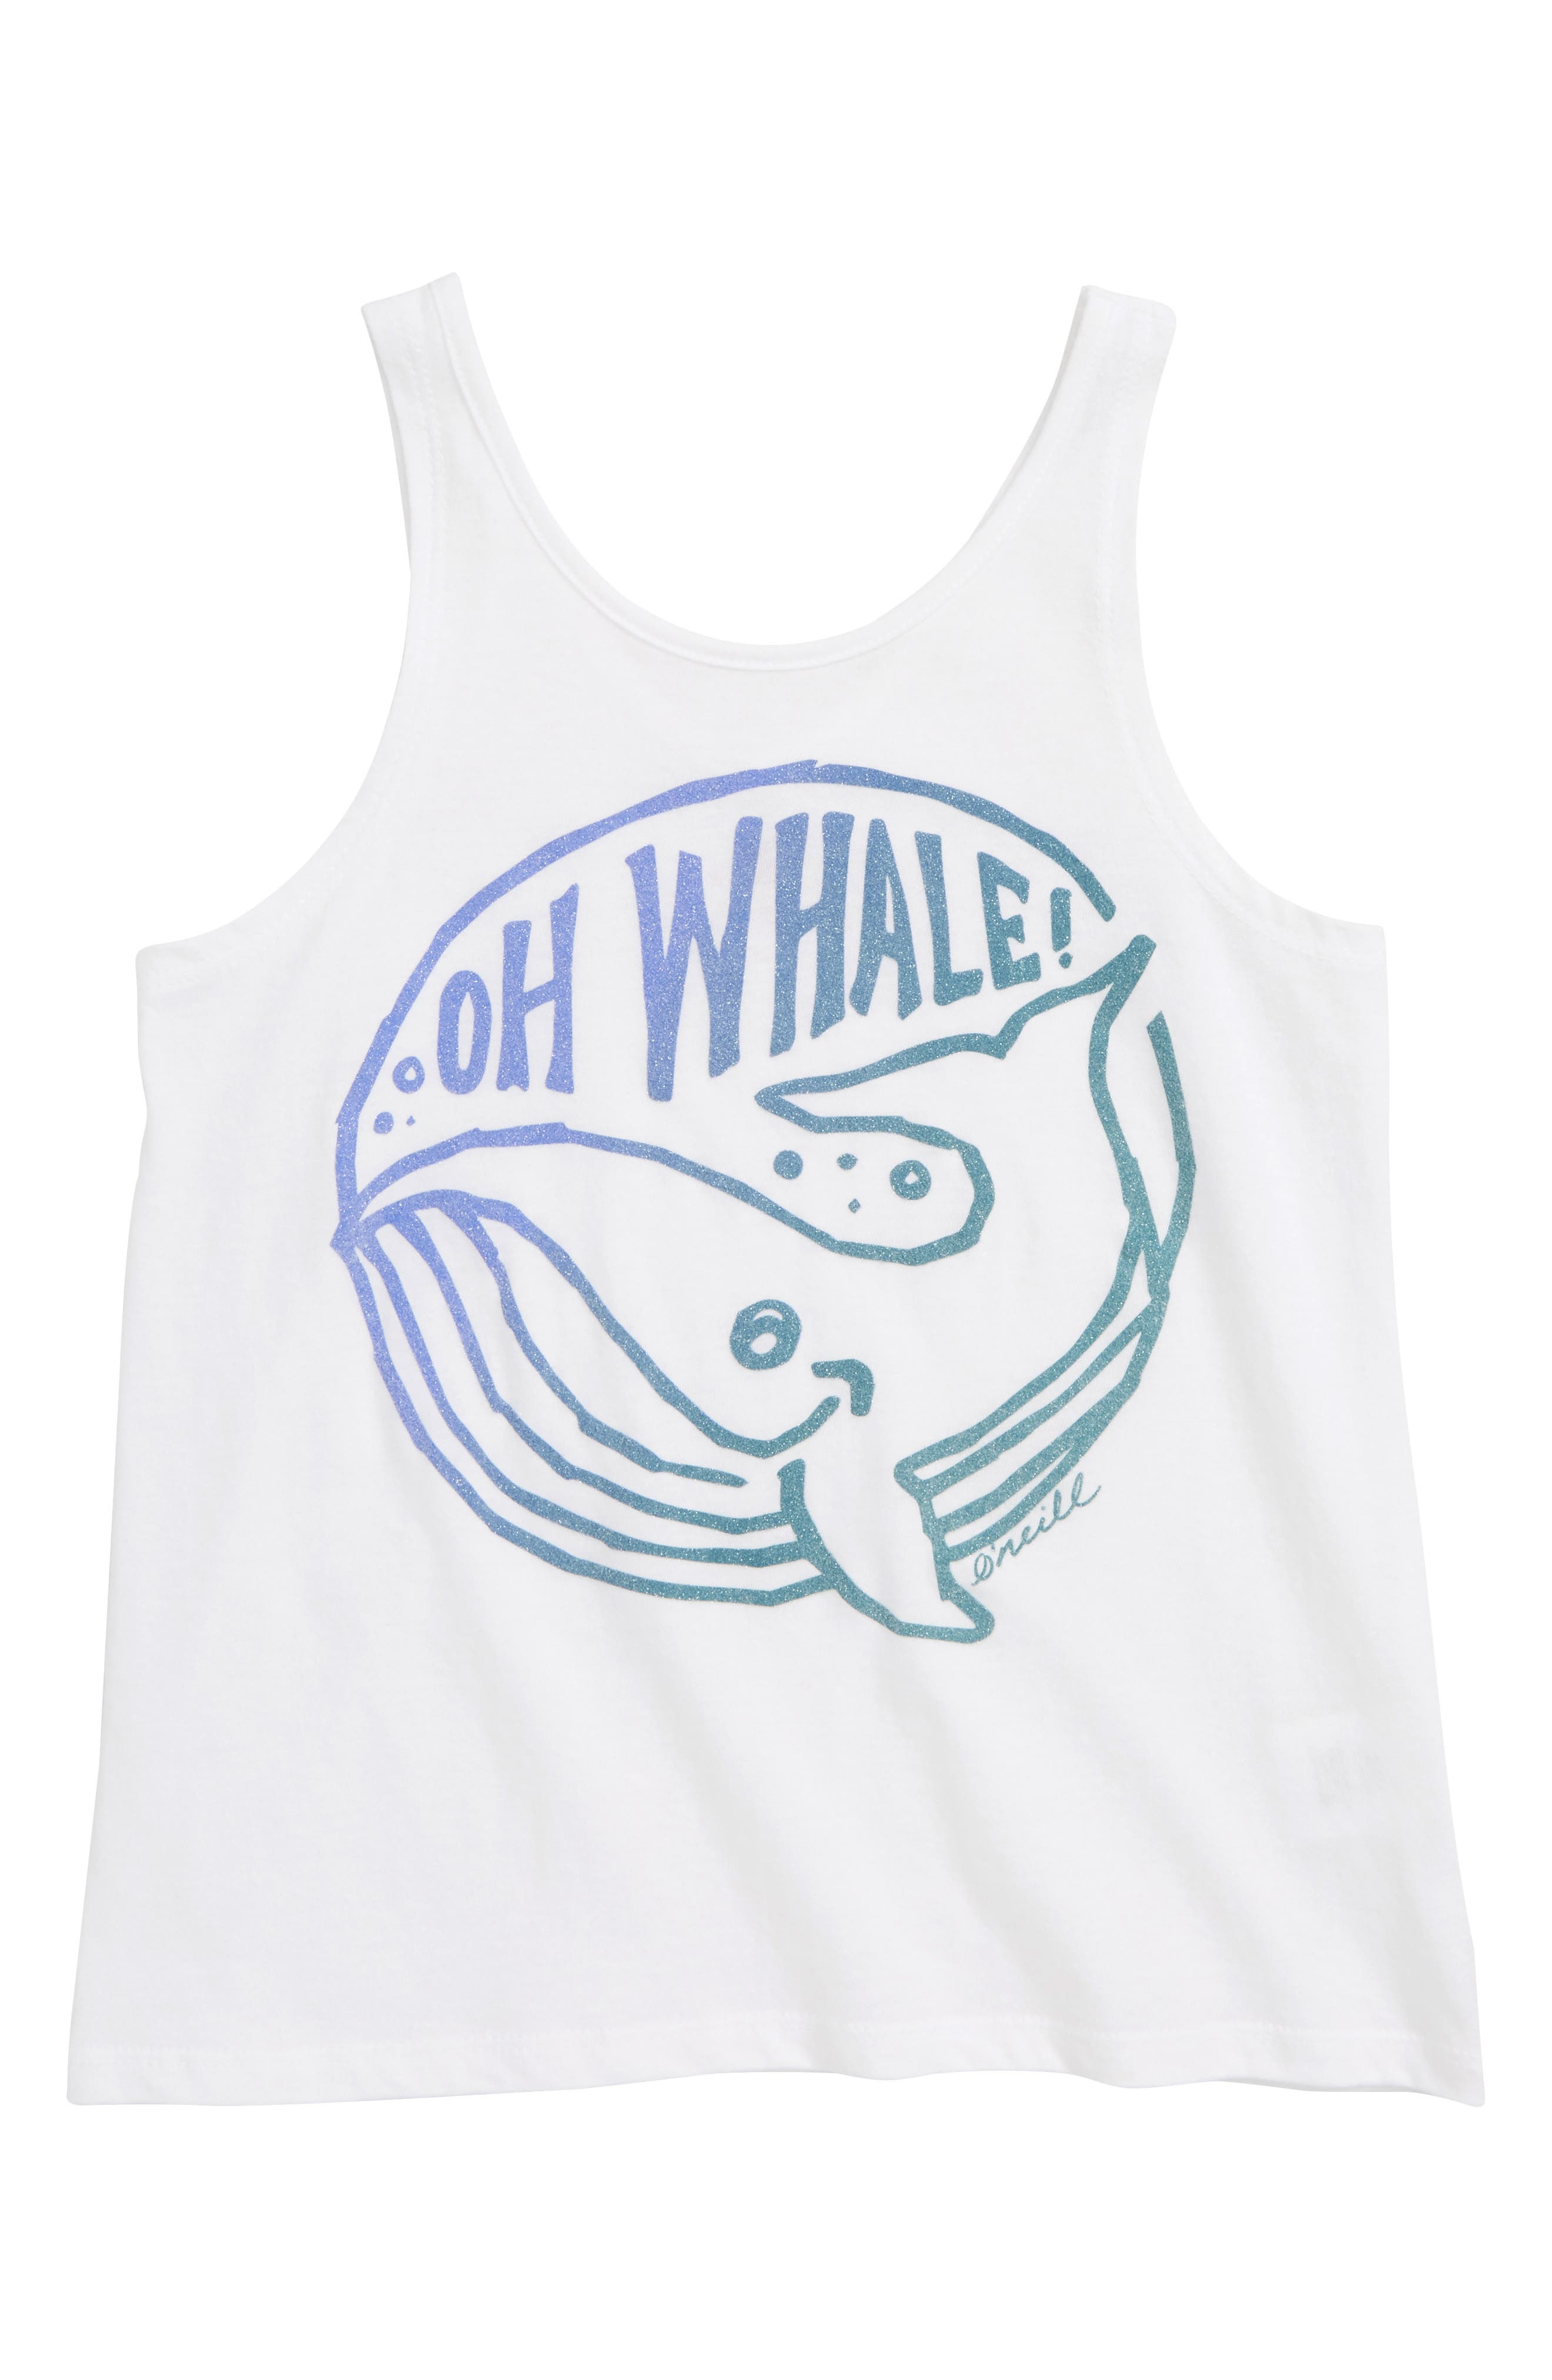 Oh Whale Graphic Tank,                             Main thumbnail 1, color,                             WHITE